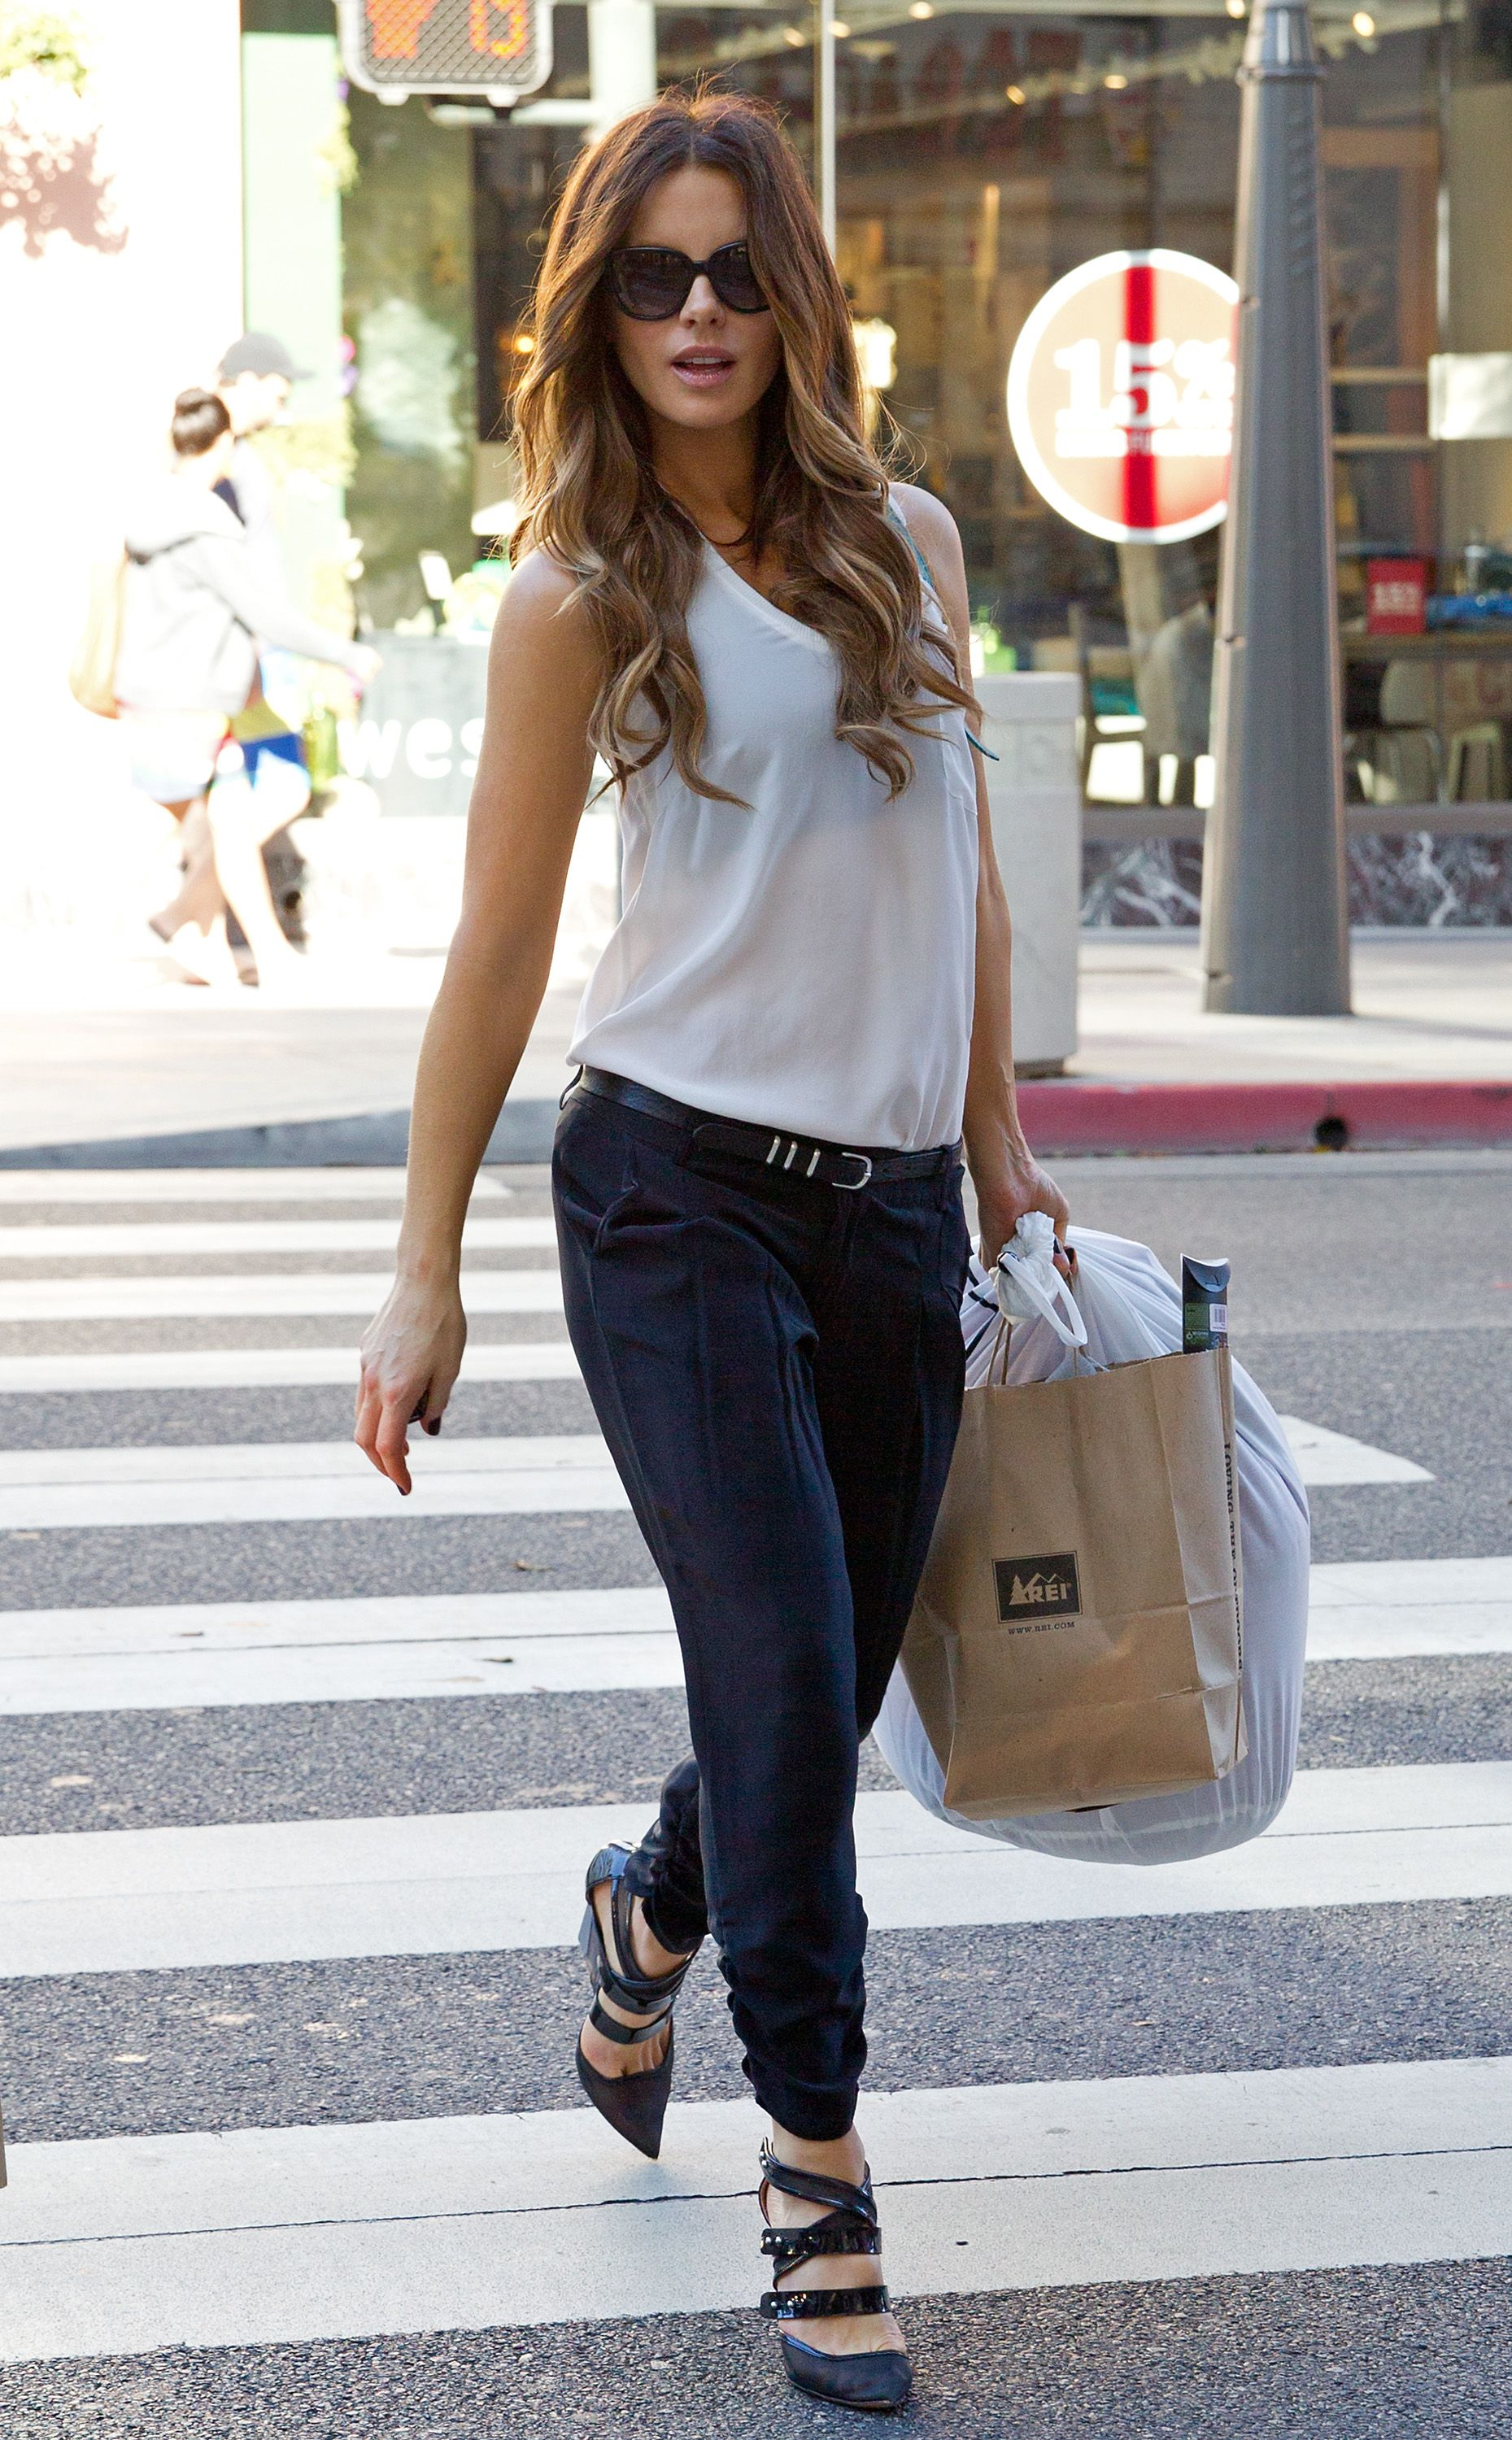 The Wardrobe Staples You Need to Be Kate Beckinsale Chic Kate Beckinsale,  Fashion Trends, 5d194cf919